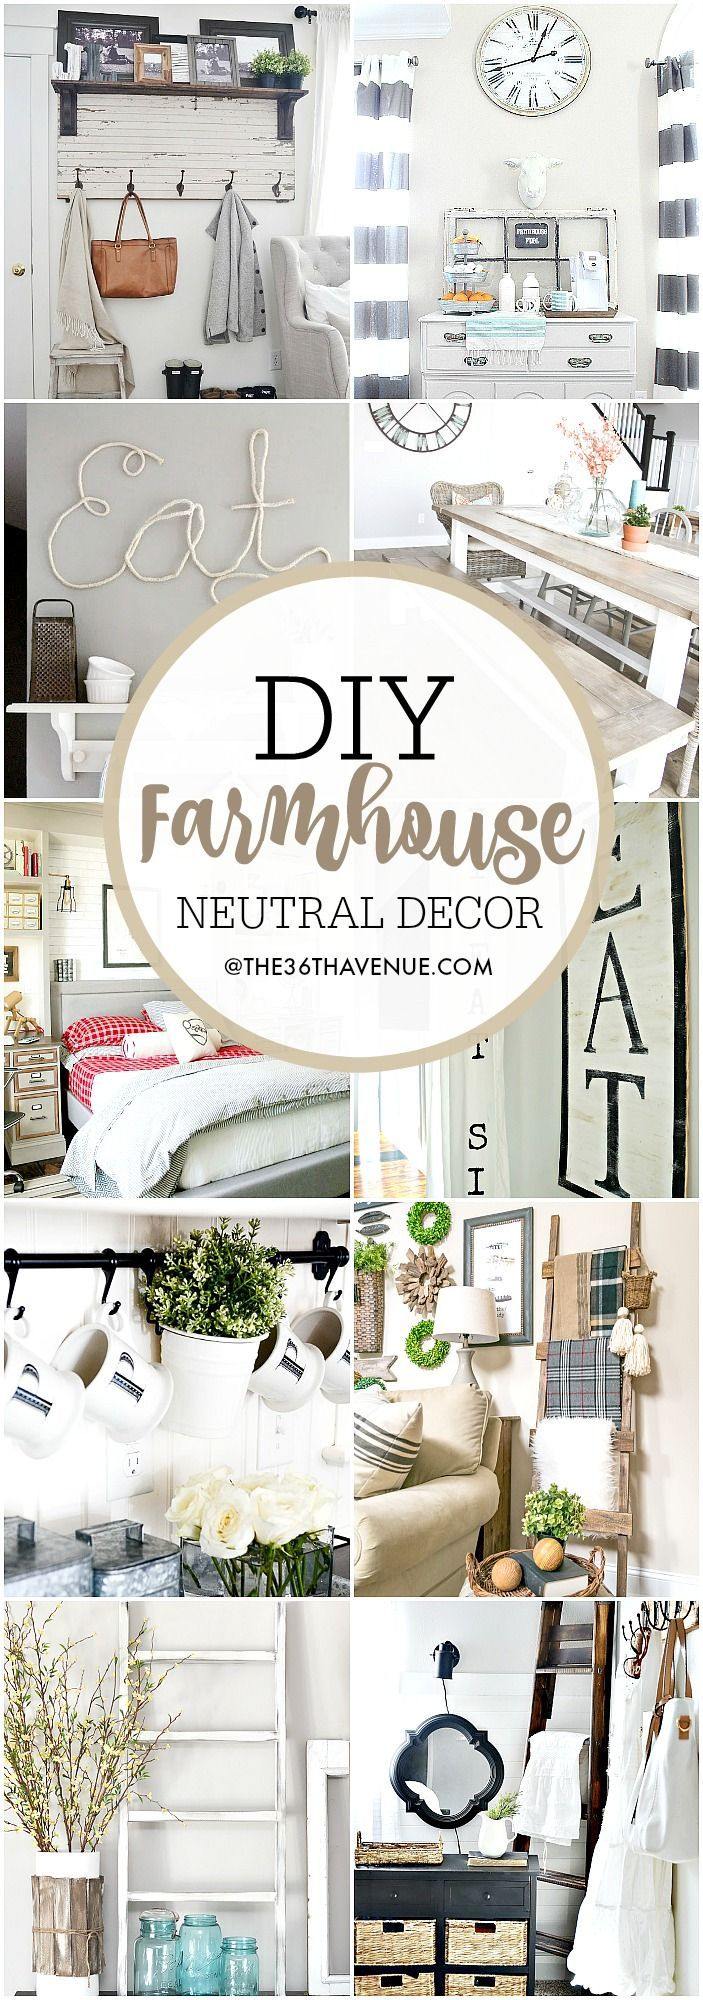 17 Best ideas about Home Decor on Pinterest   Decorations for home  Home  storage ideas and Small space organization. 17 Best ideas about Home Decor on Pinterest   Decorations for home